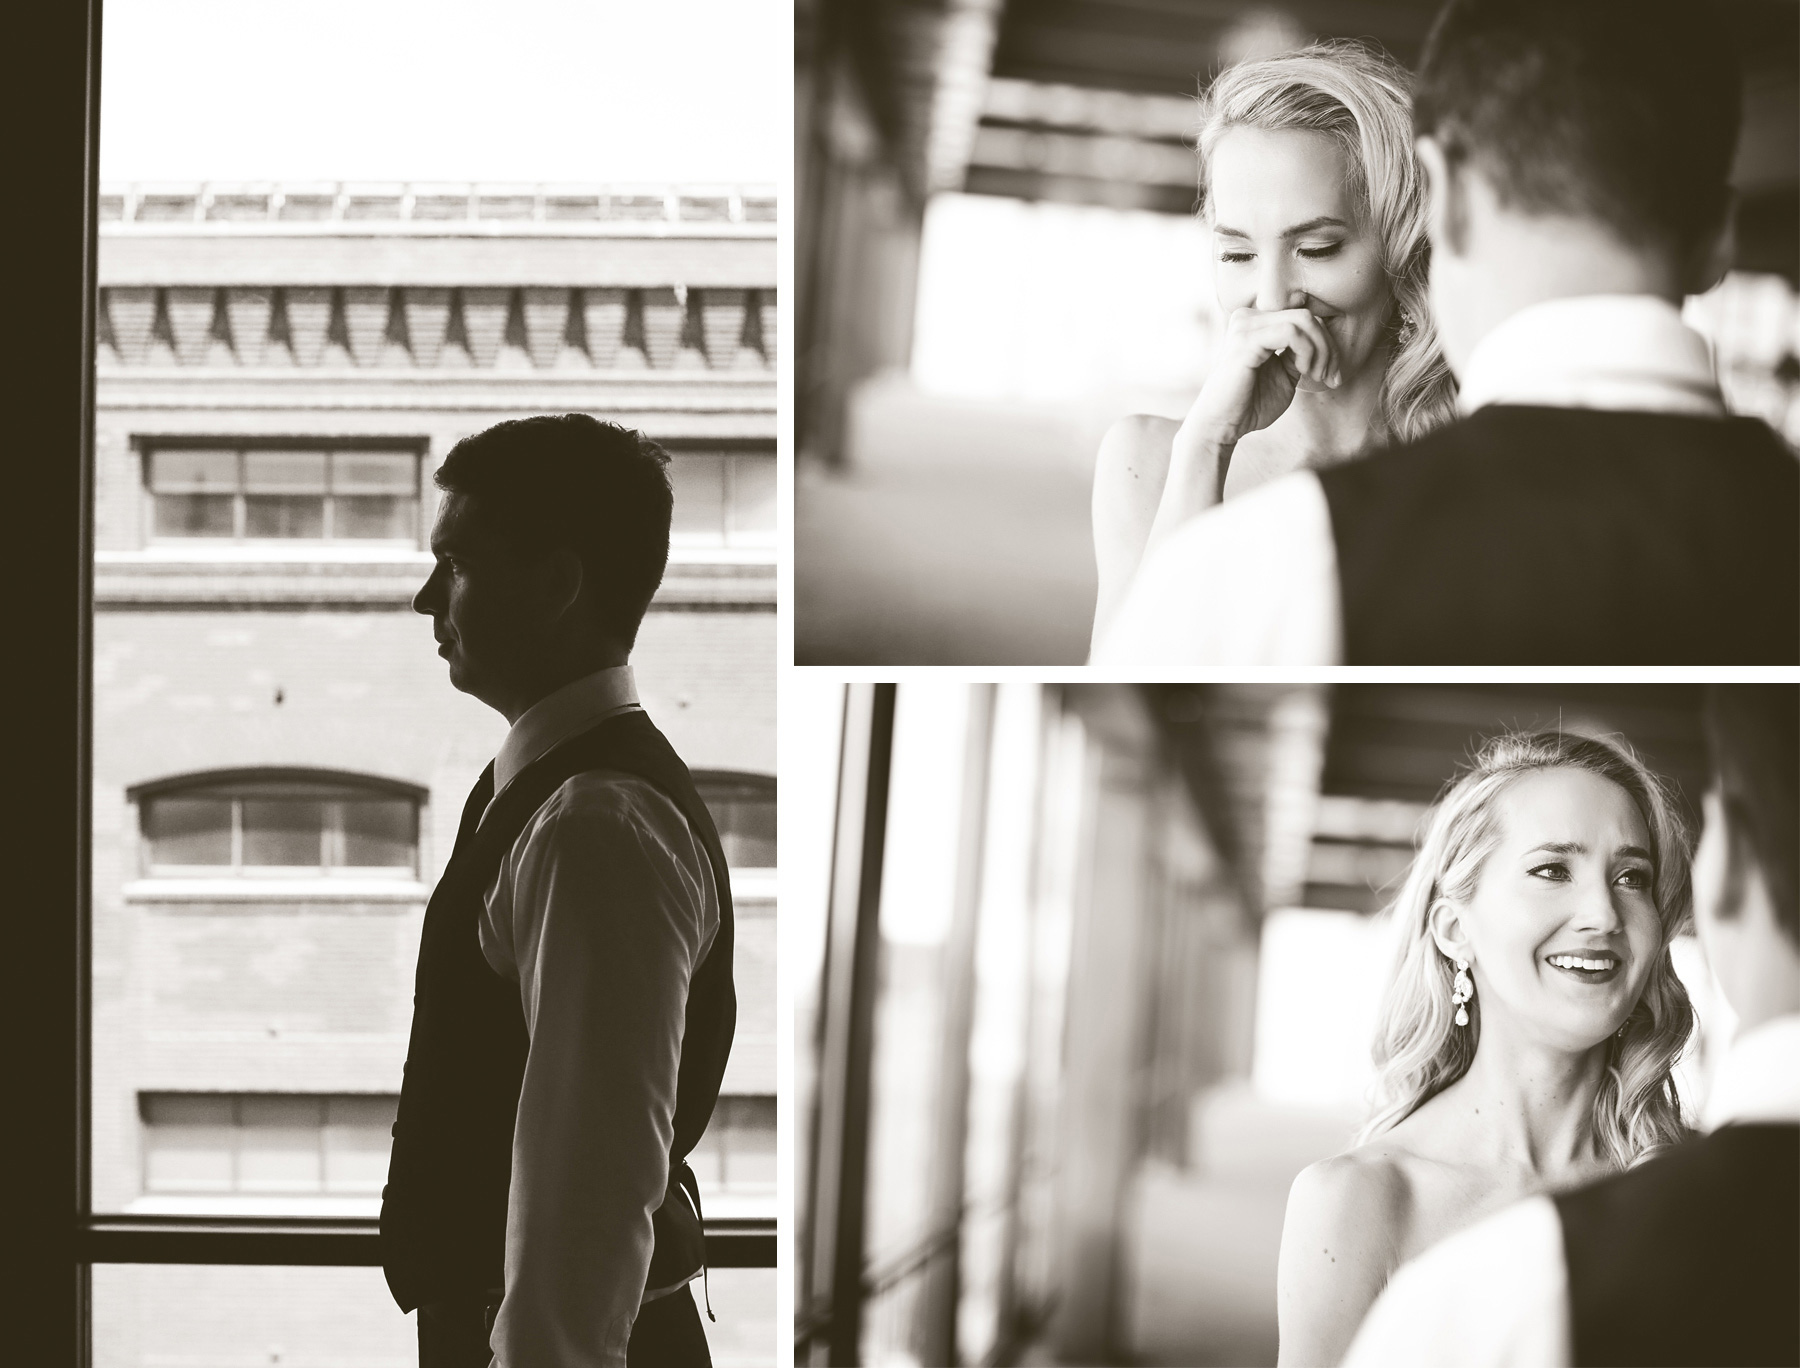 04-Saint-Paul-Minnesota-Wedding-Photographer-by-Andrew-Vick-Photography-Summer-Abulae-Bride-Groom-First-Meeting-SepiaTears-Crying-Emotions-Laura-and-Tim.jpg